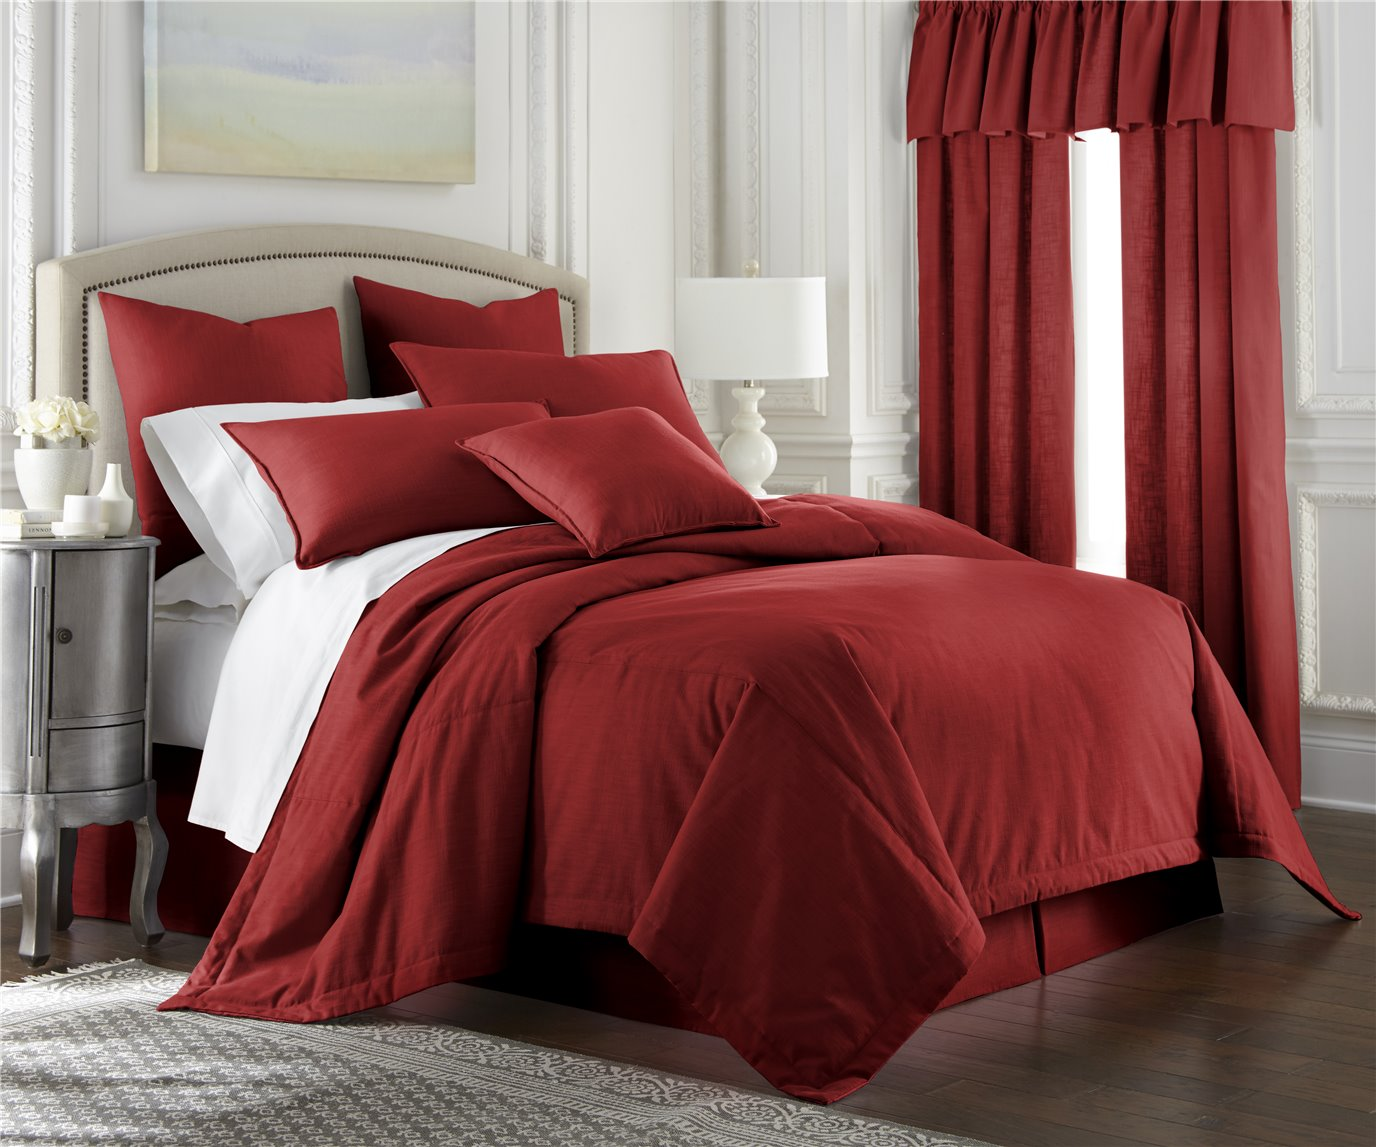 Cambric Red Comforter Full